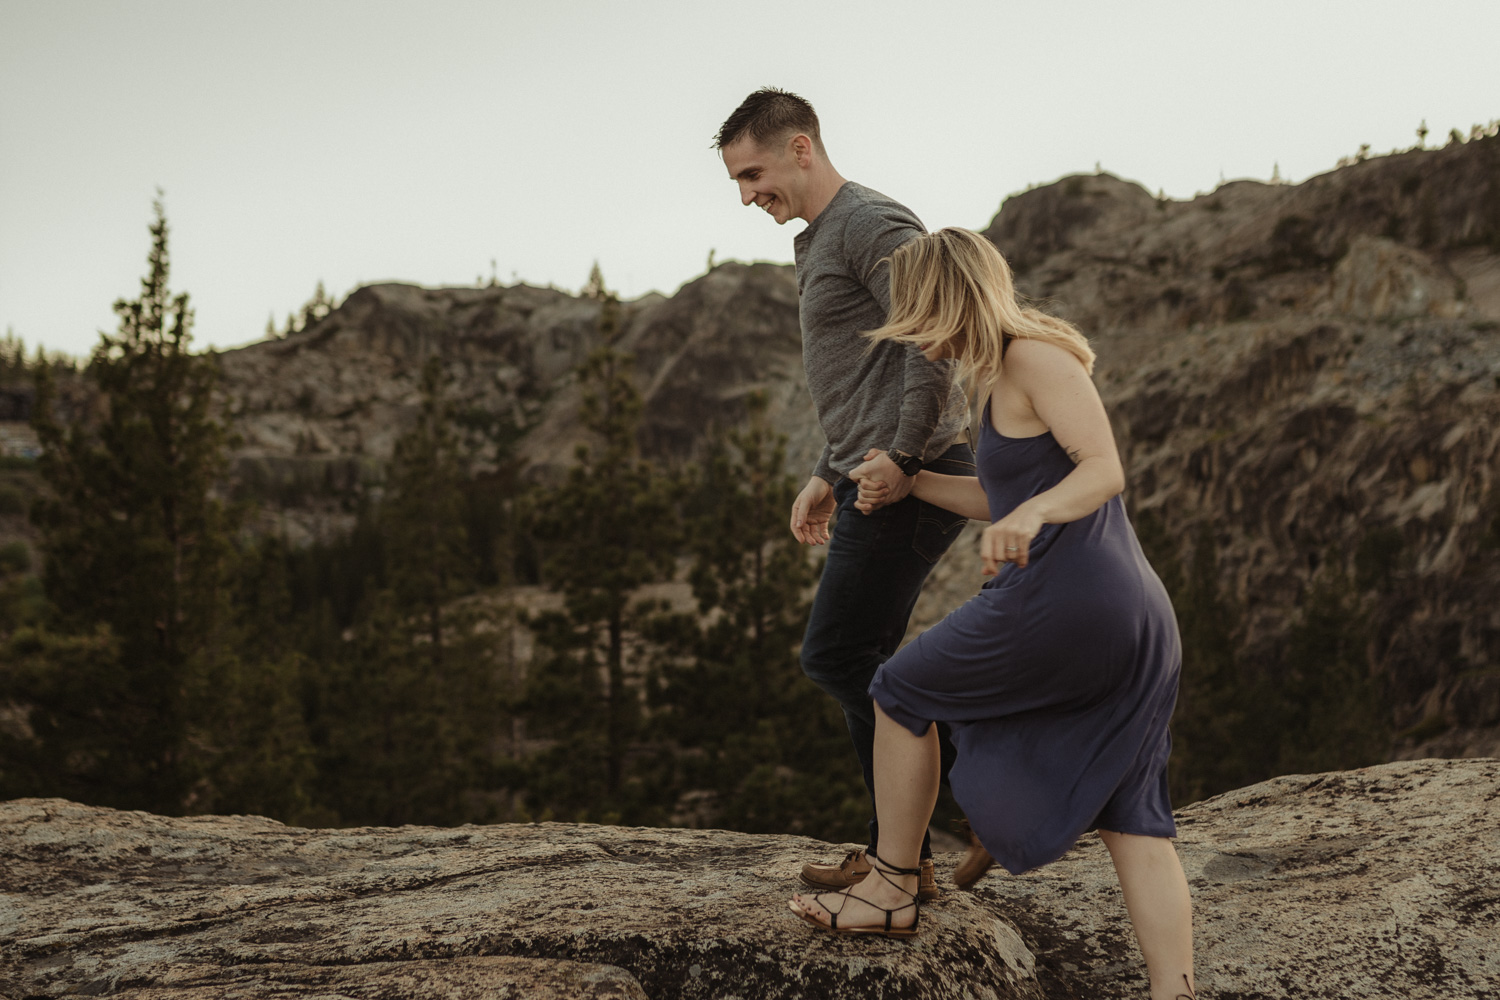 Lake tahoe photographer, couple hiking on a trail photo